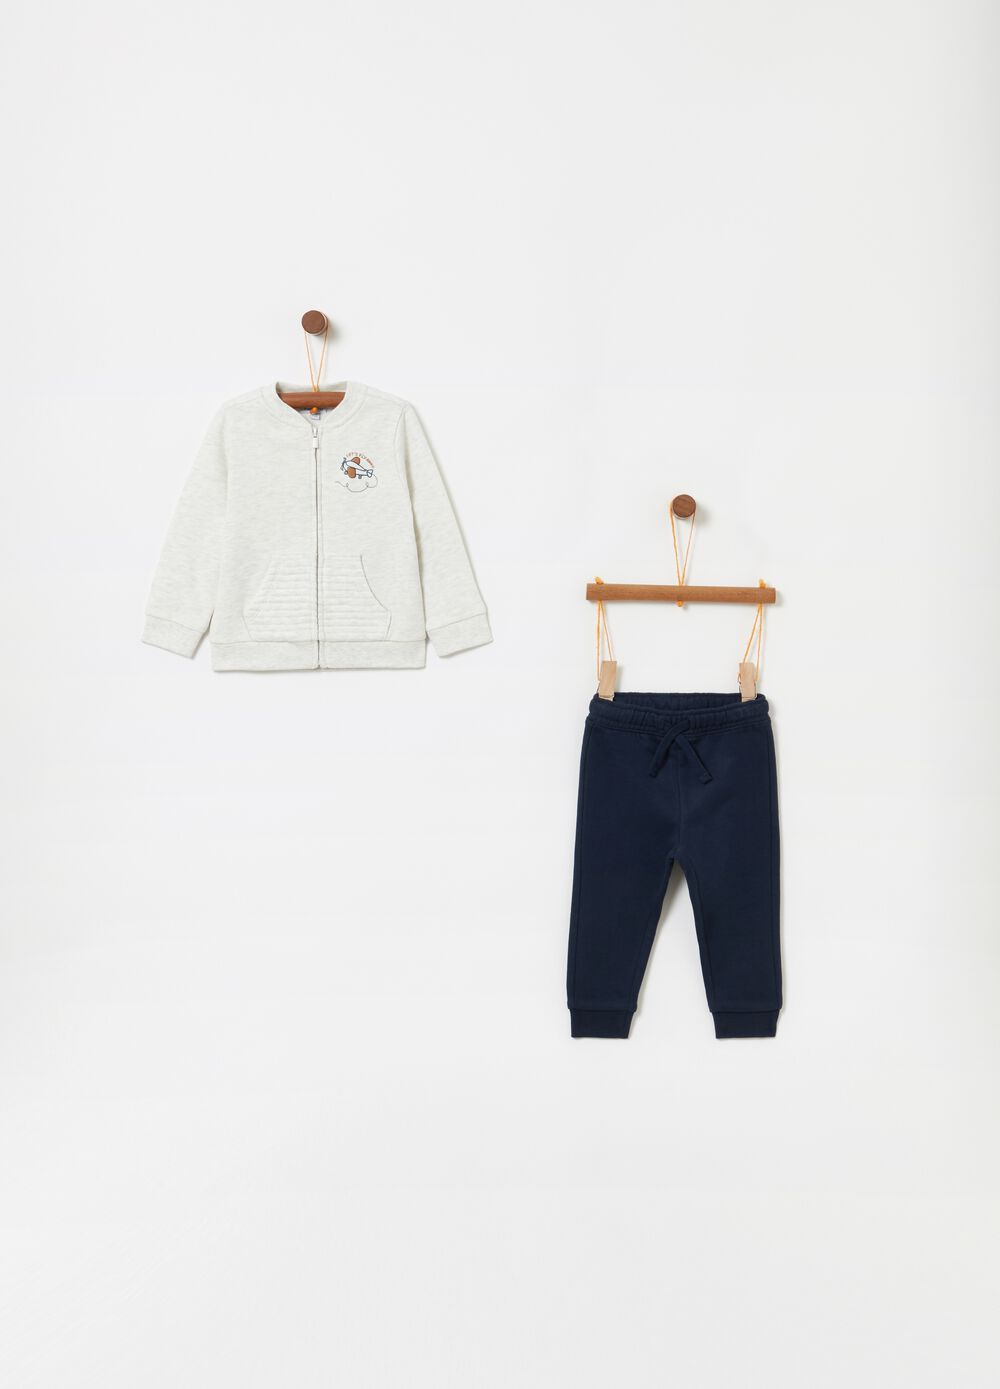 Jogging set consisting of top and trousers with quilted pocket